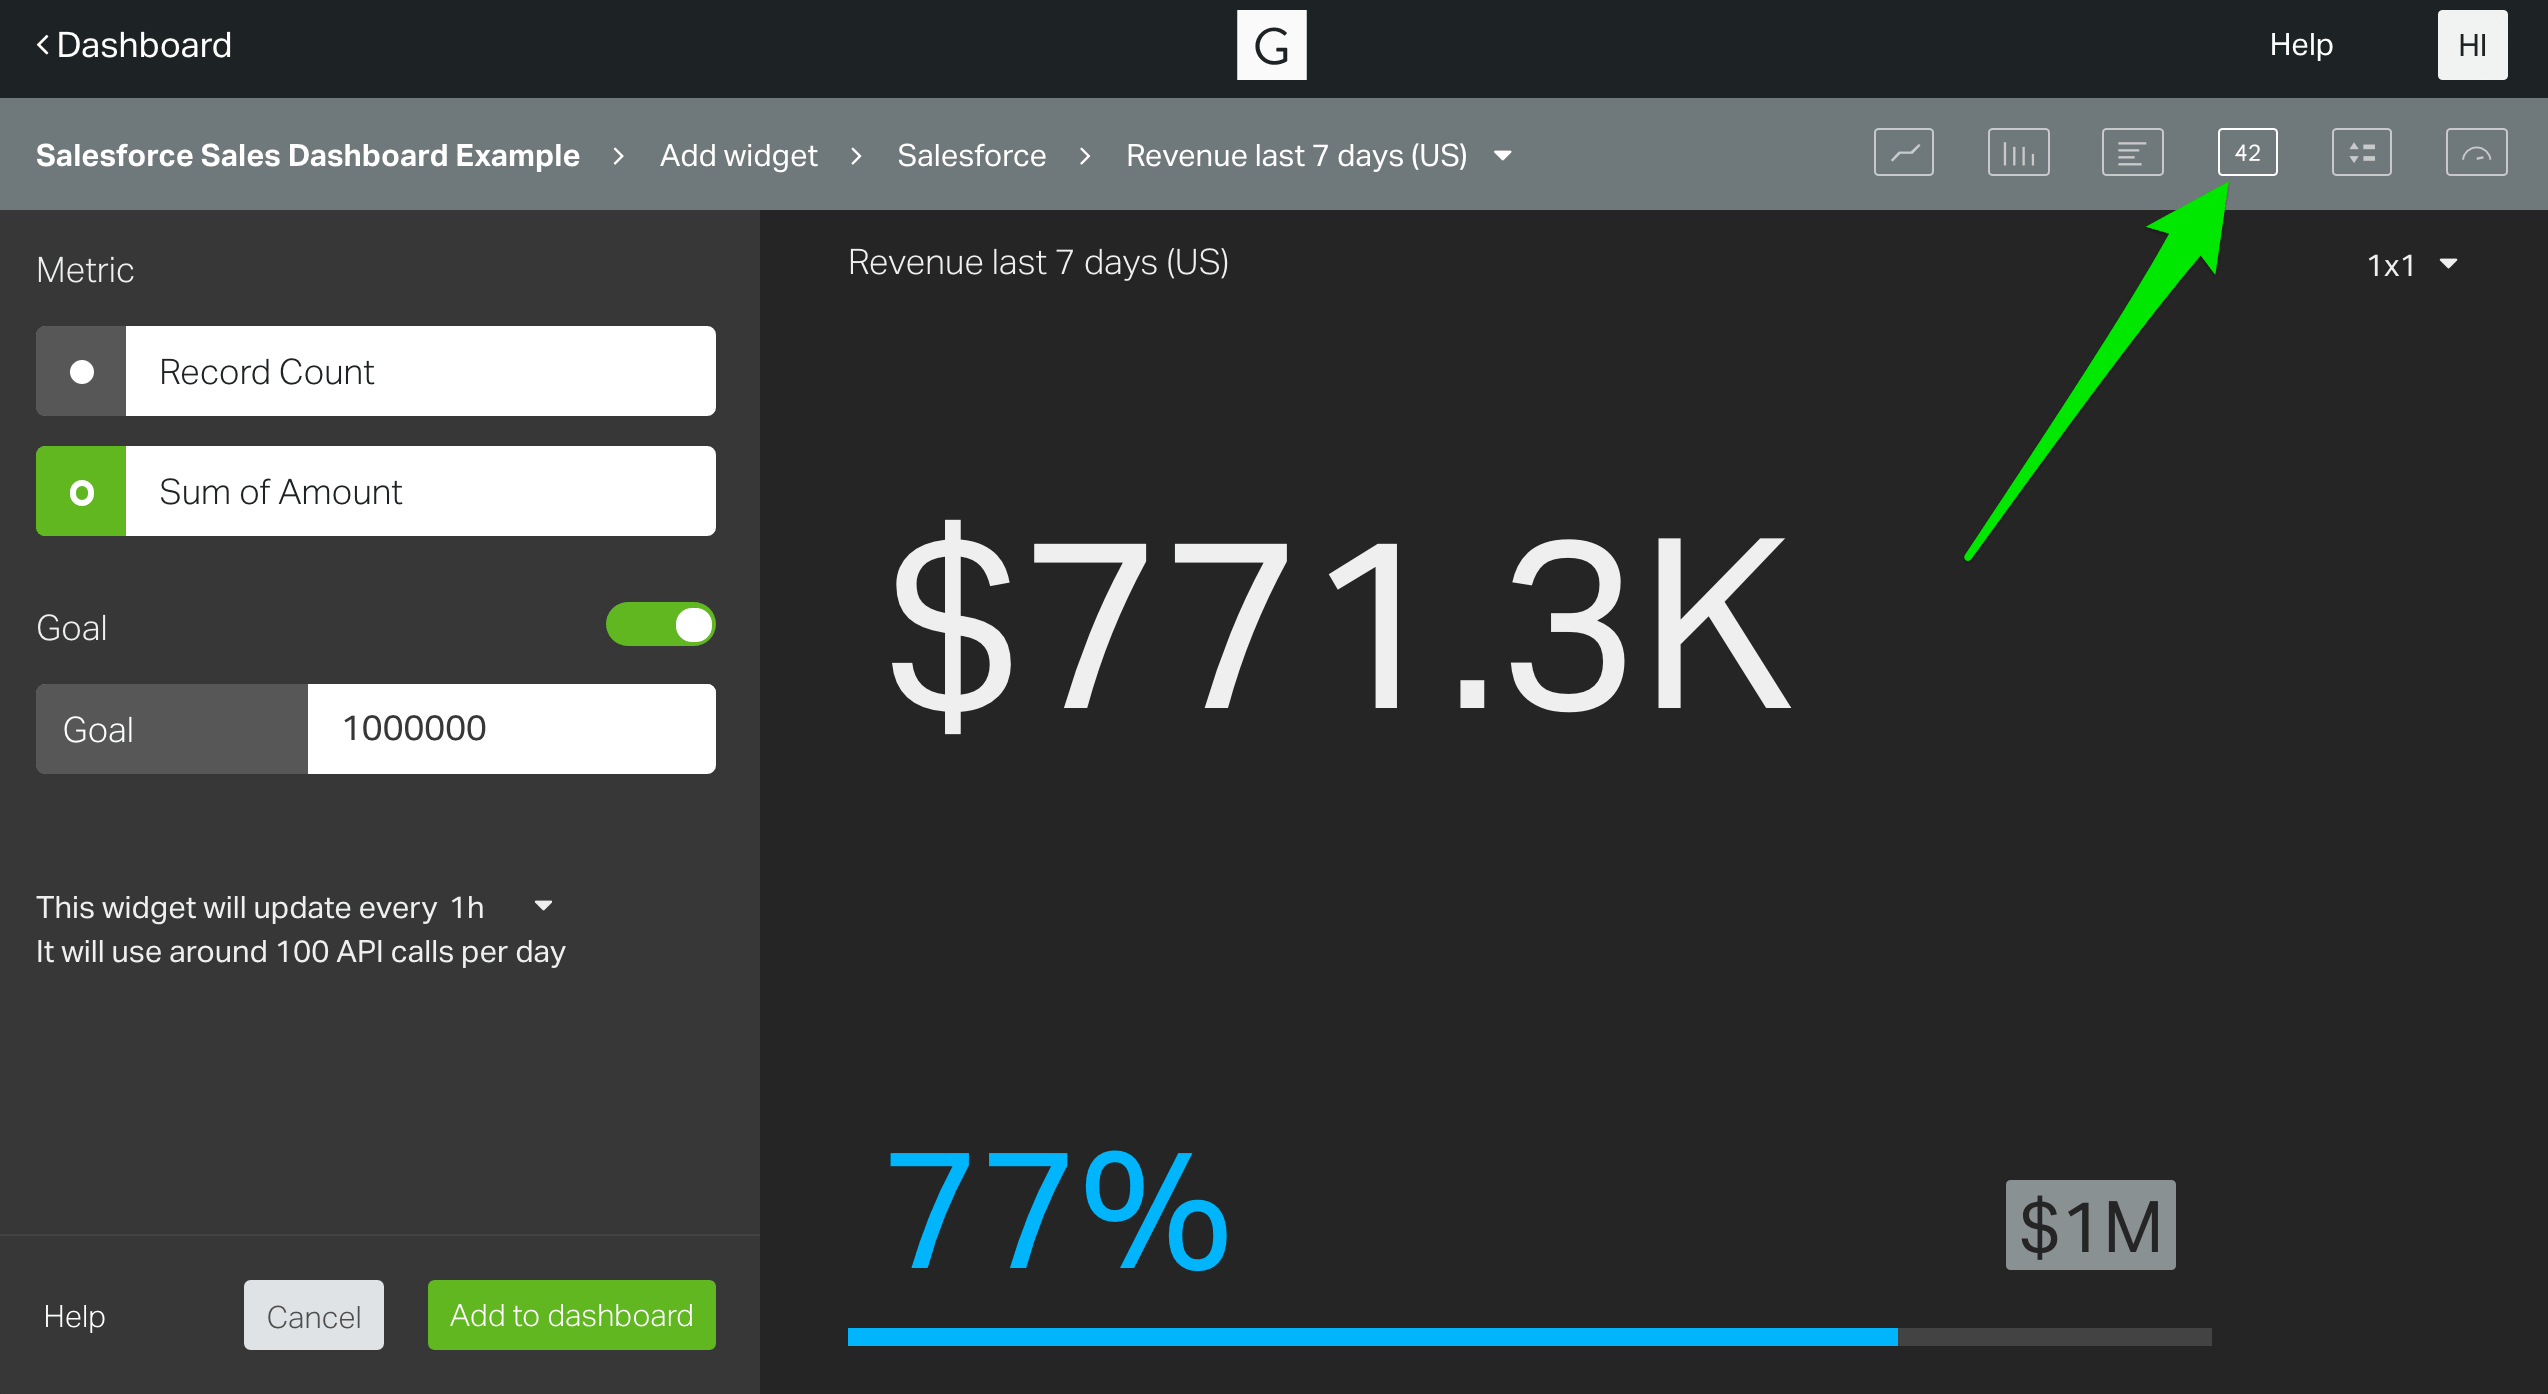 configure your Revenue last 7 days (US) widget